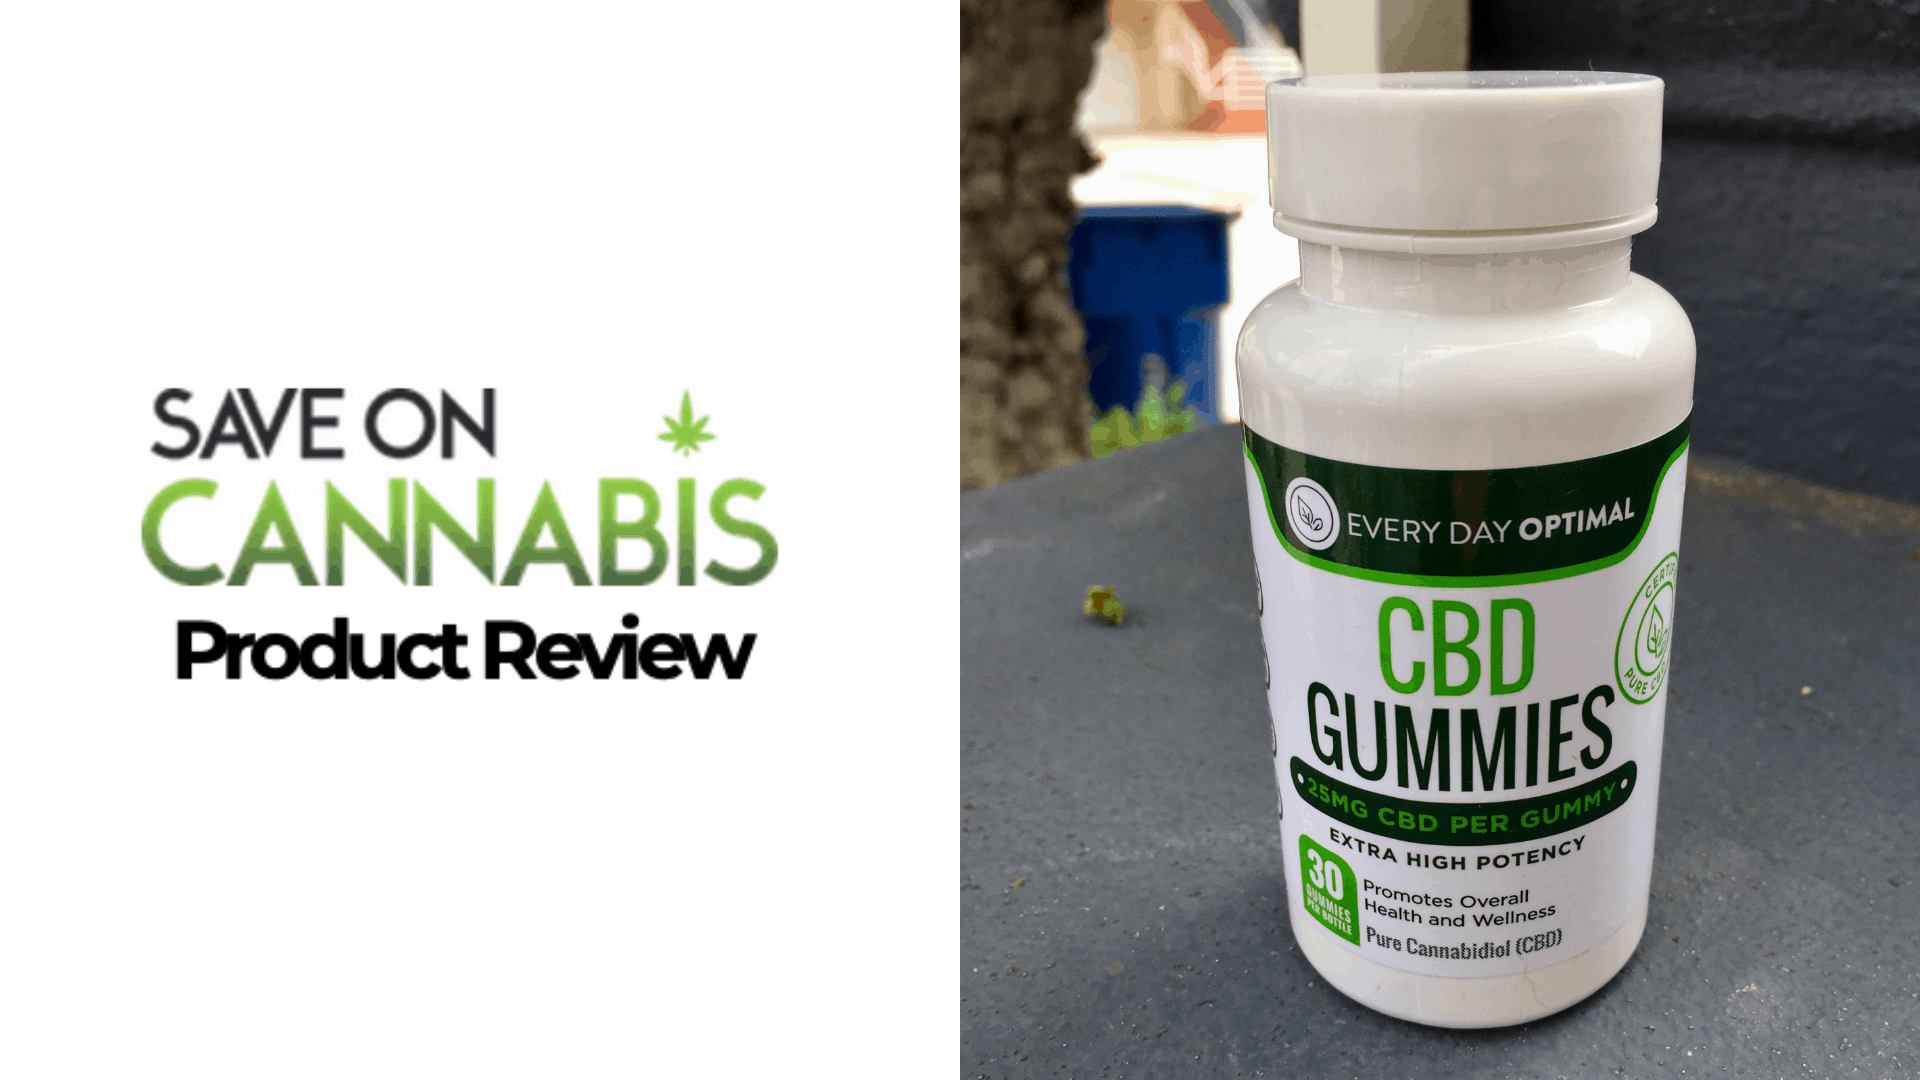 everyday optimal gummies Save On Cannabis Website